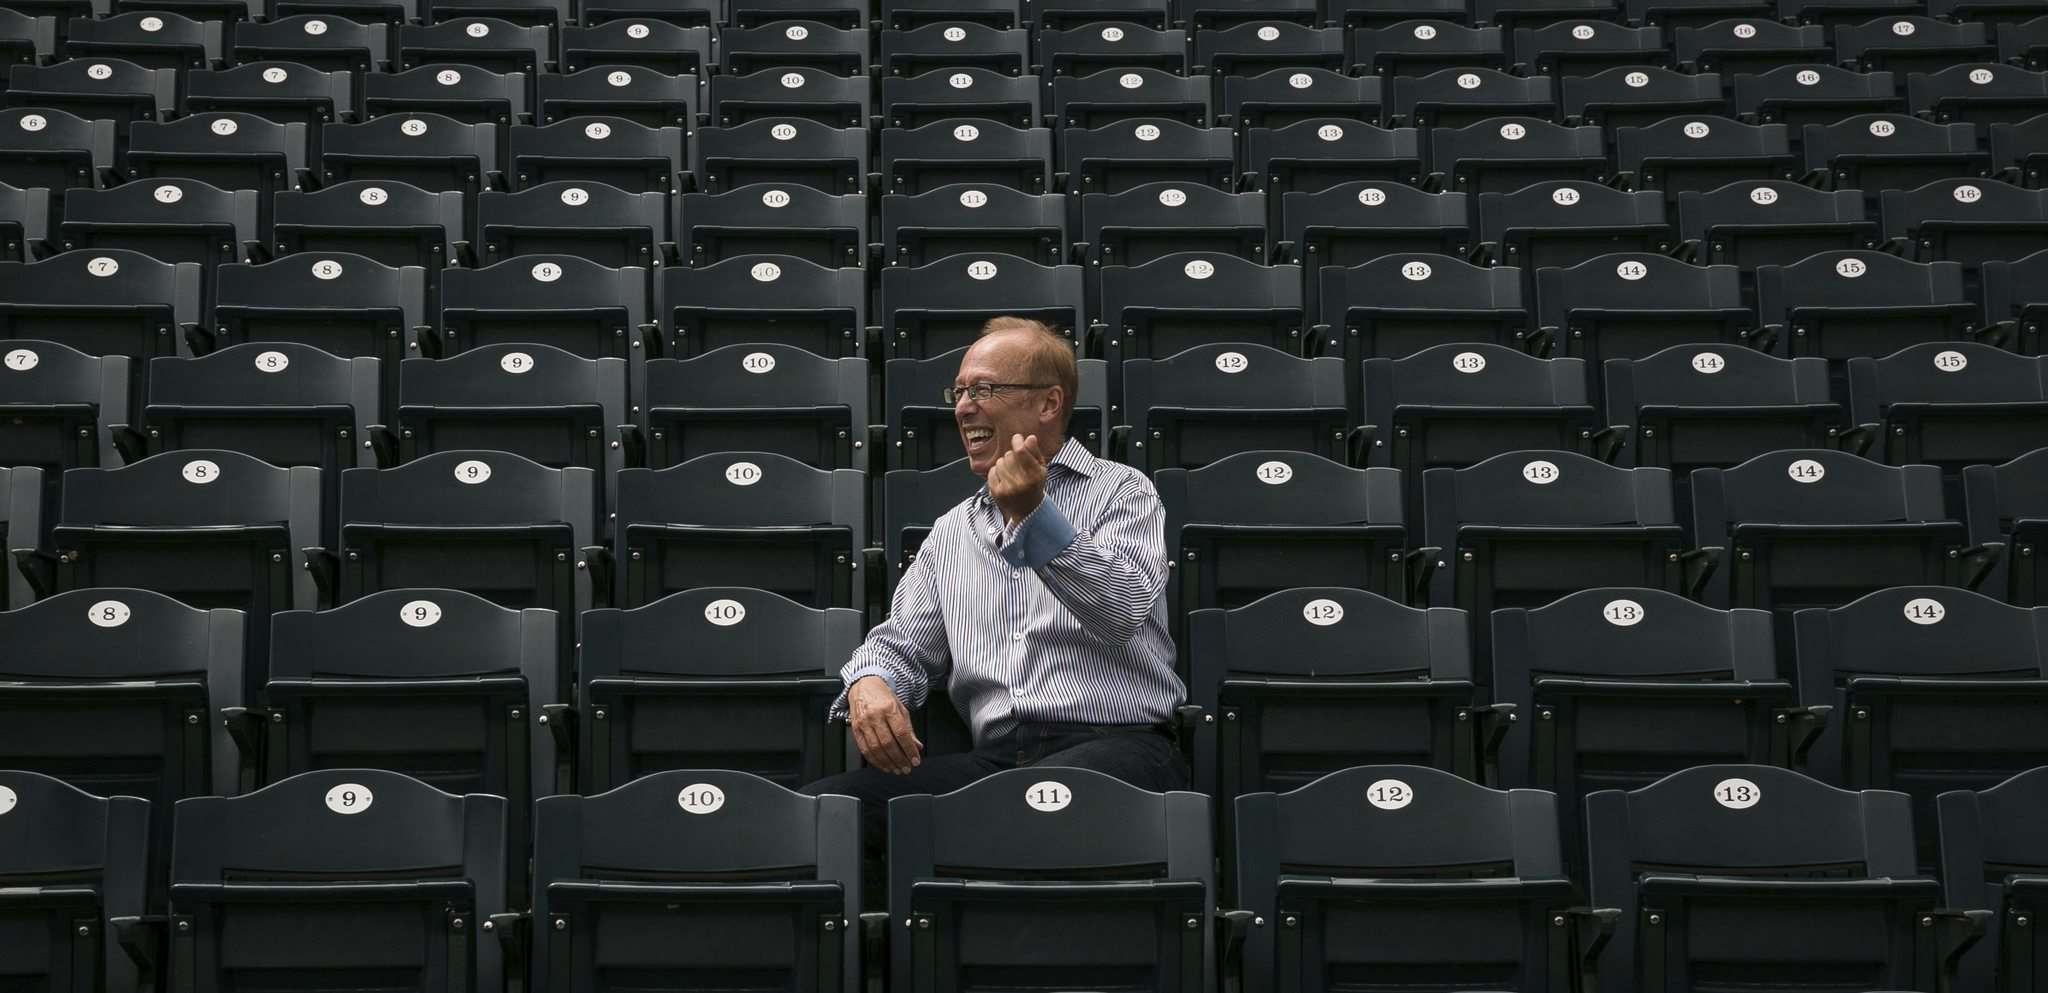 Goldeyes owner Sam Katz says the team will play in another city if it has to. (Melissa Tait / Winnipeg Free Press files)